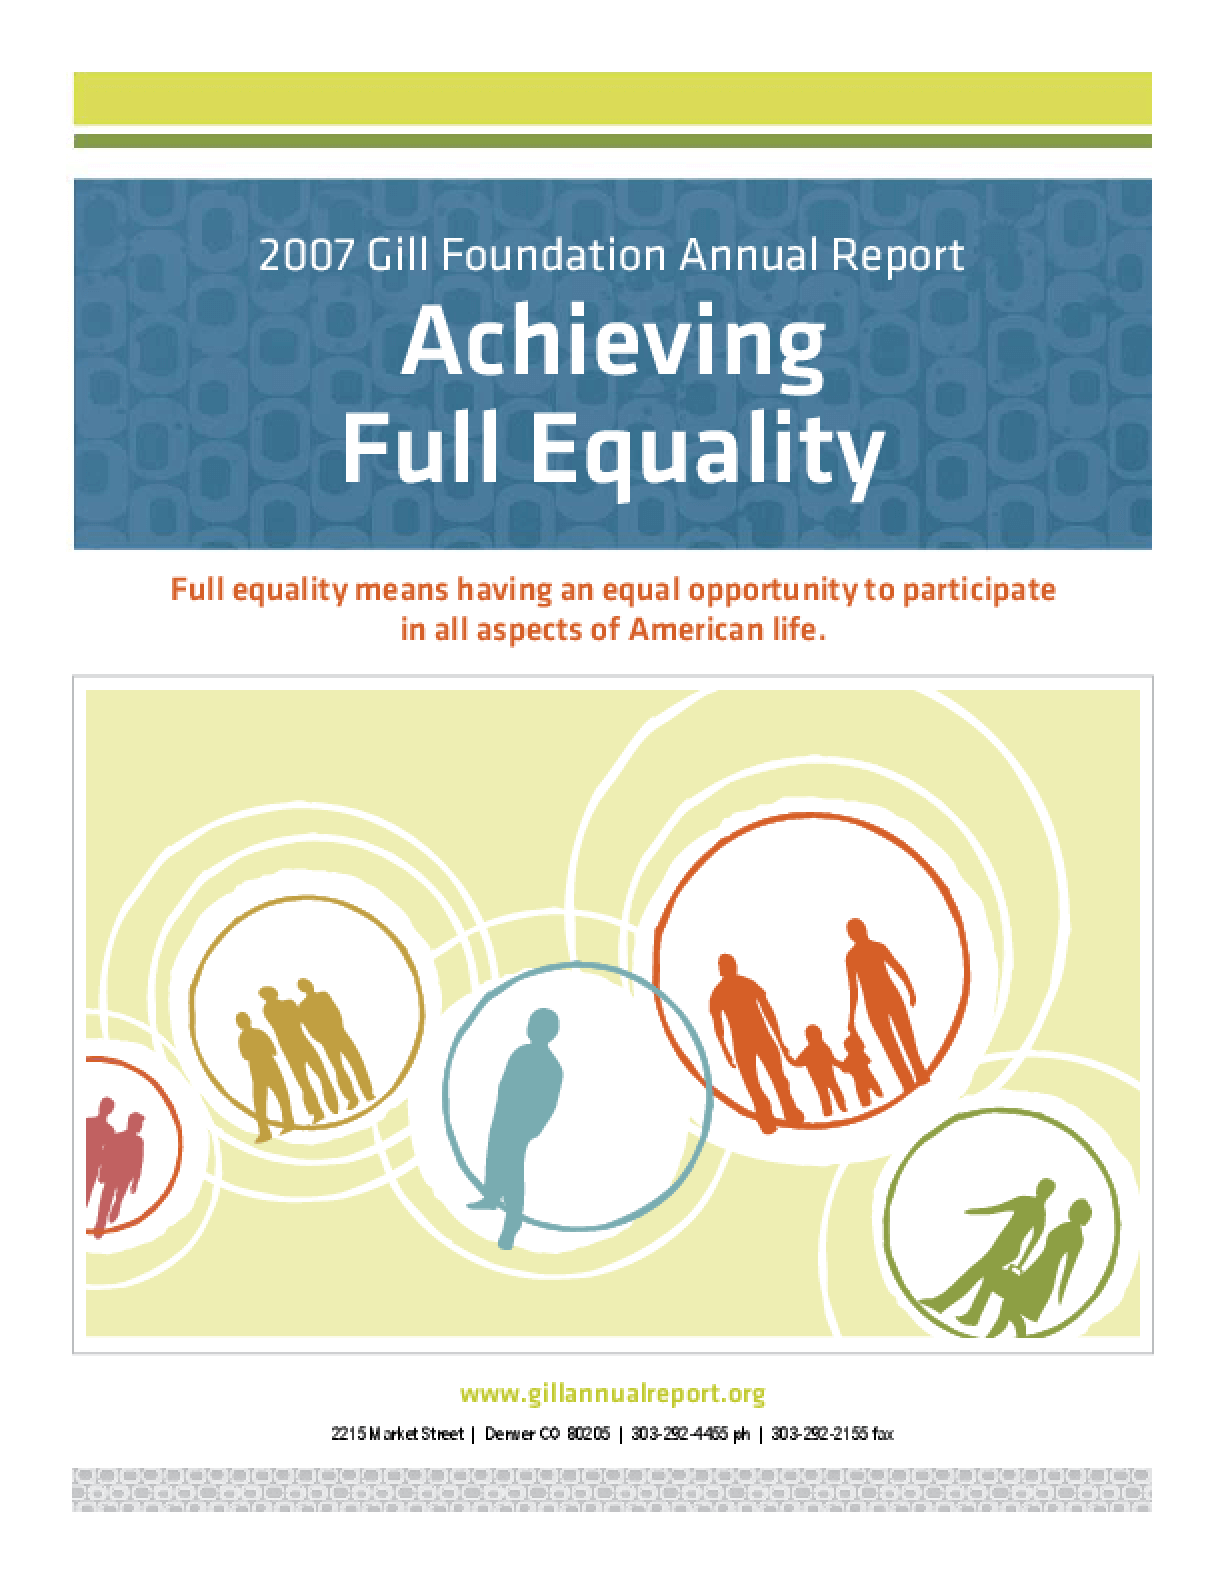 Gill Foundation - 2007 Annual Report: Achieving Full Equality